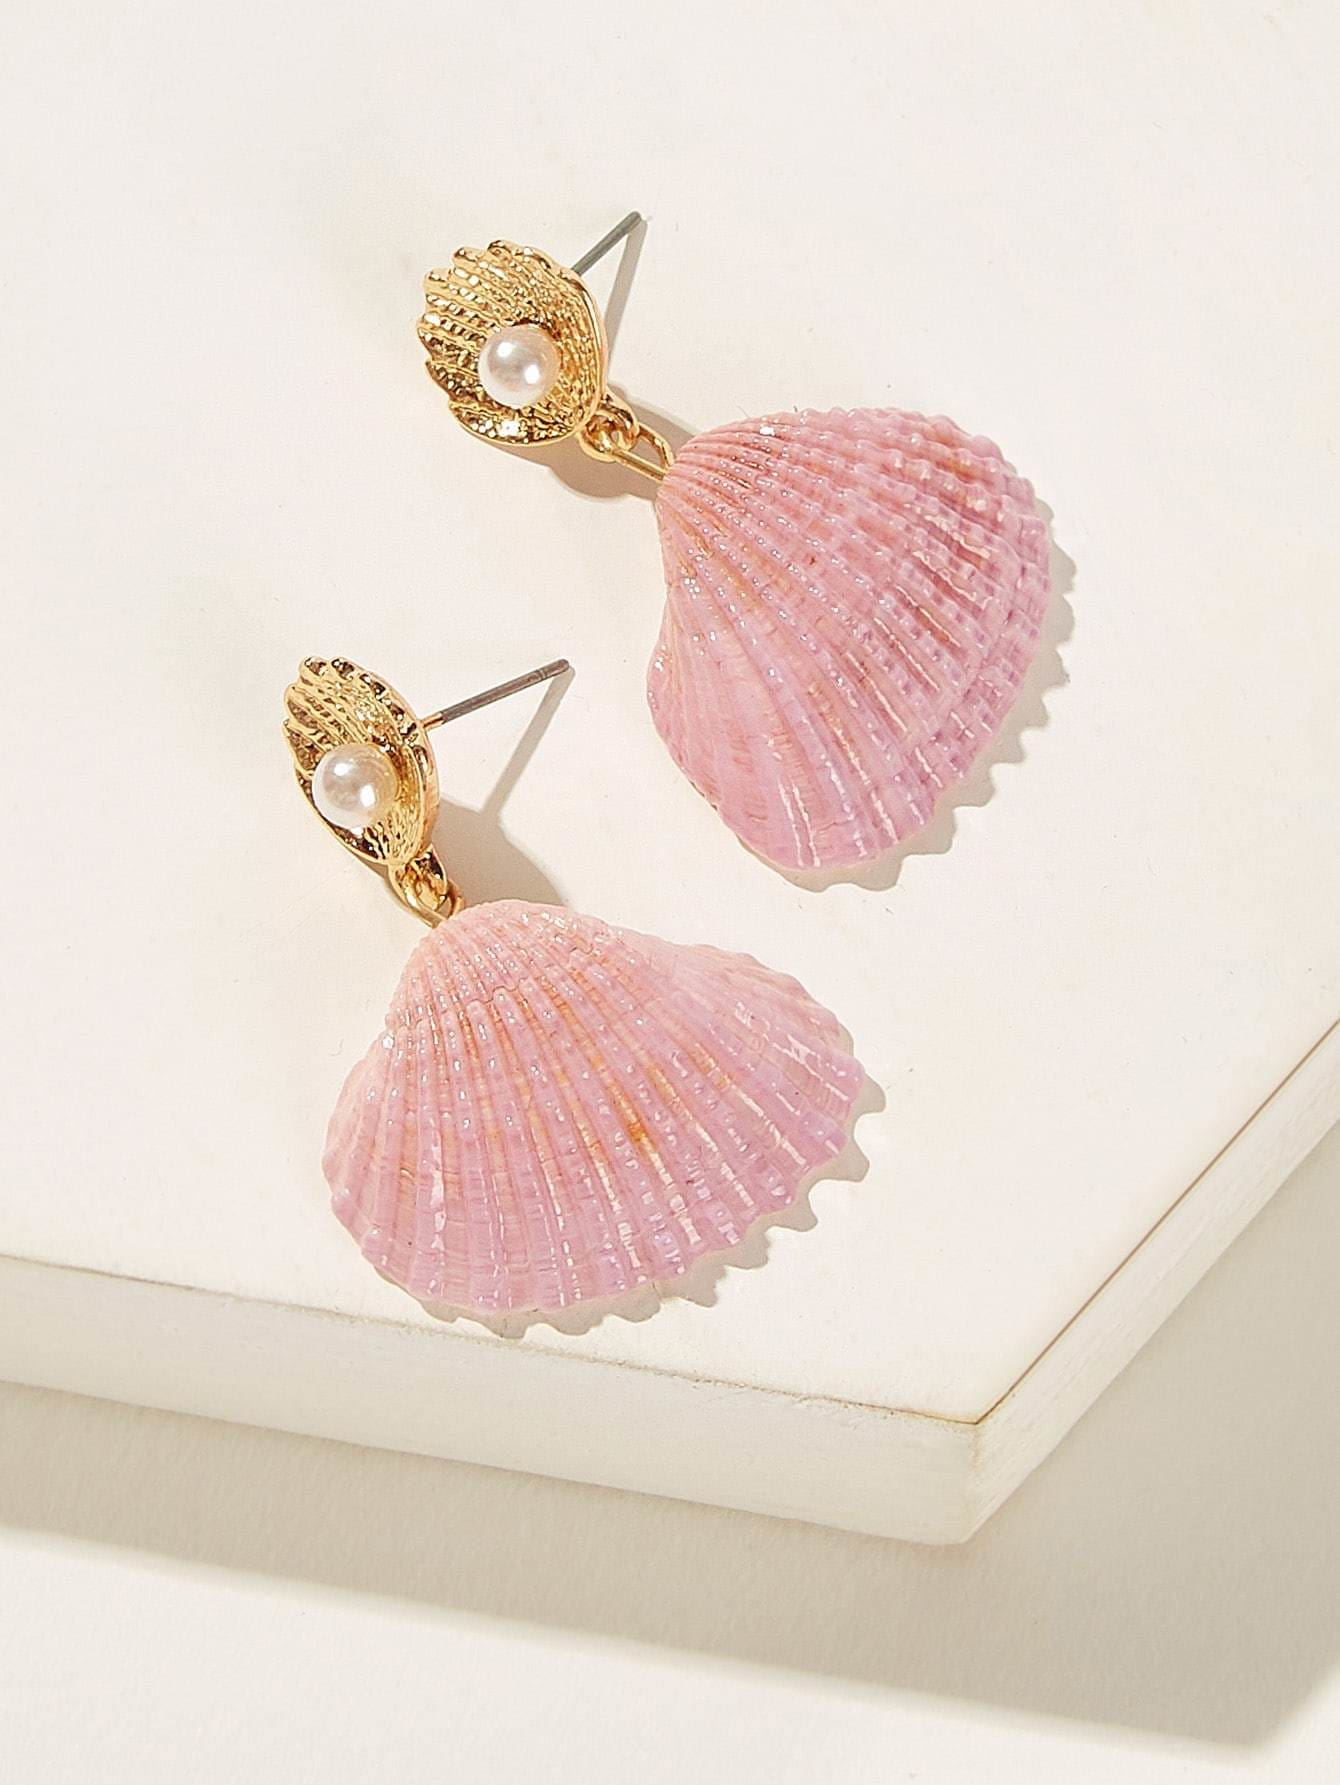 Faux Pearl Decor Shell Drop Earrings 1pair - Earrings